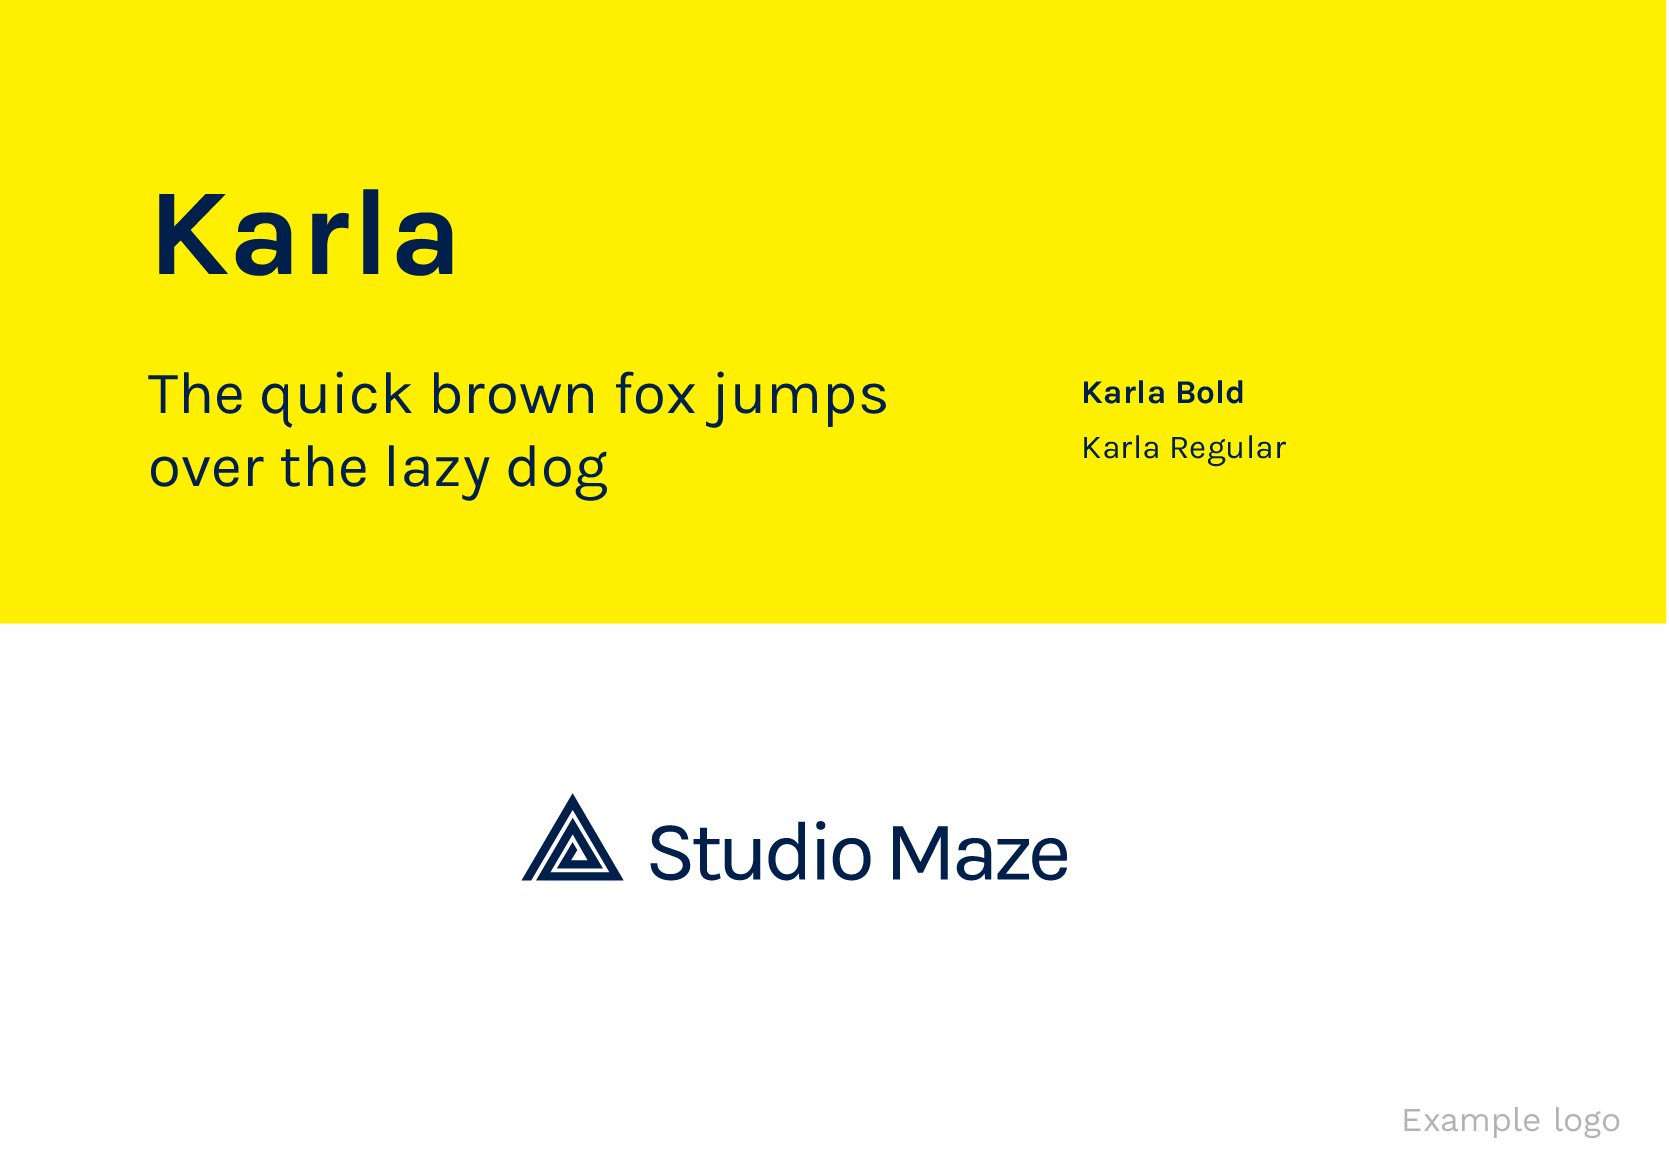 Karla Google Fonts for Logos